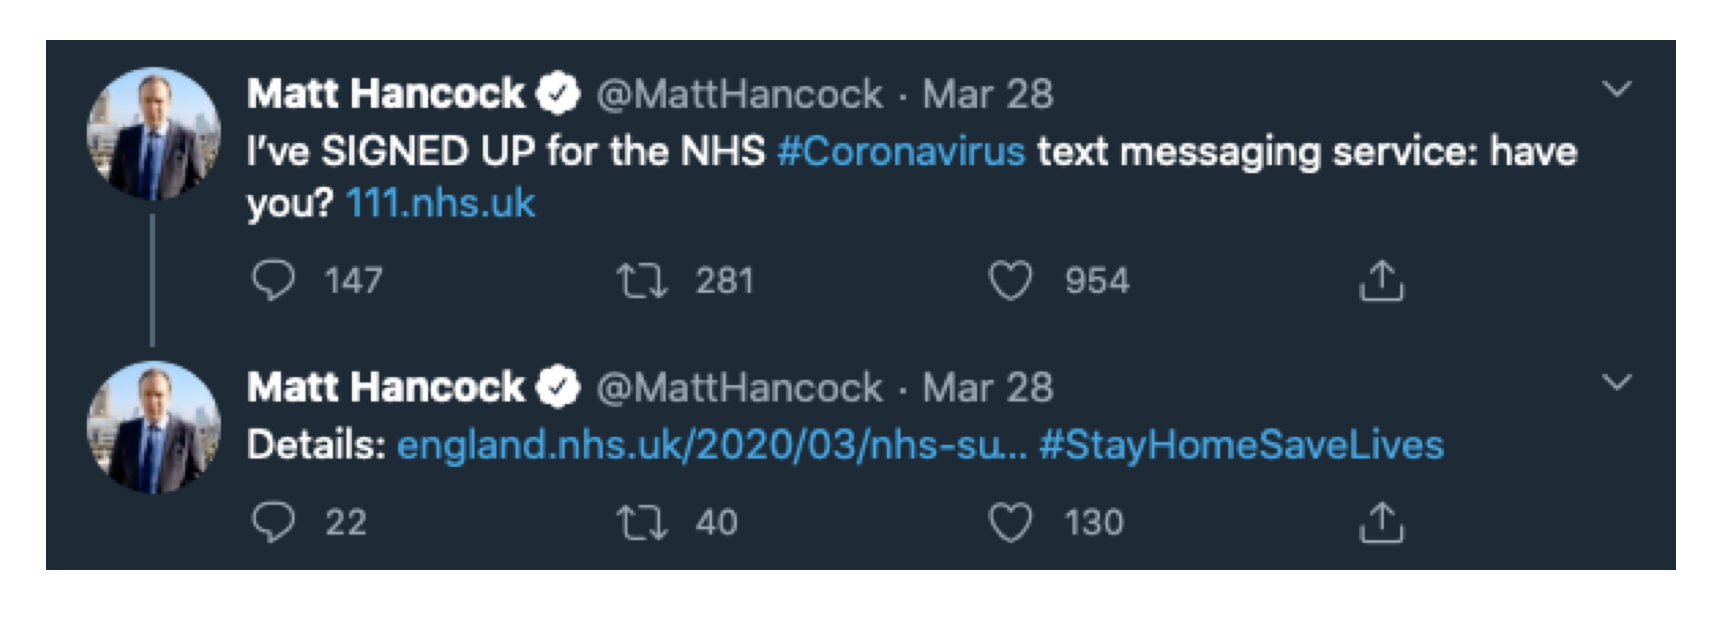 Tweet about NHS COIV-19 texting service